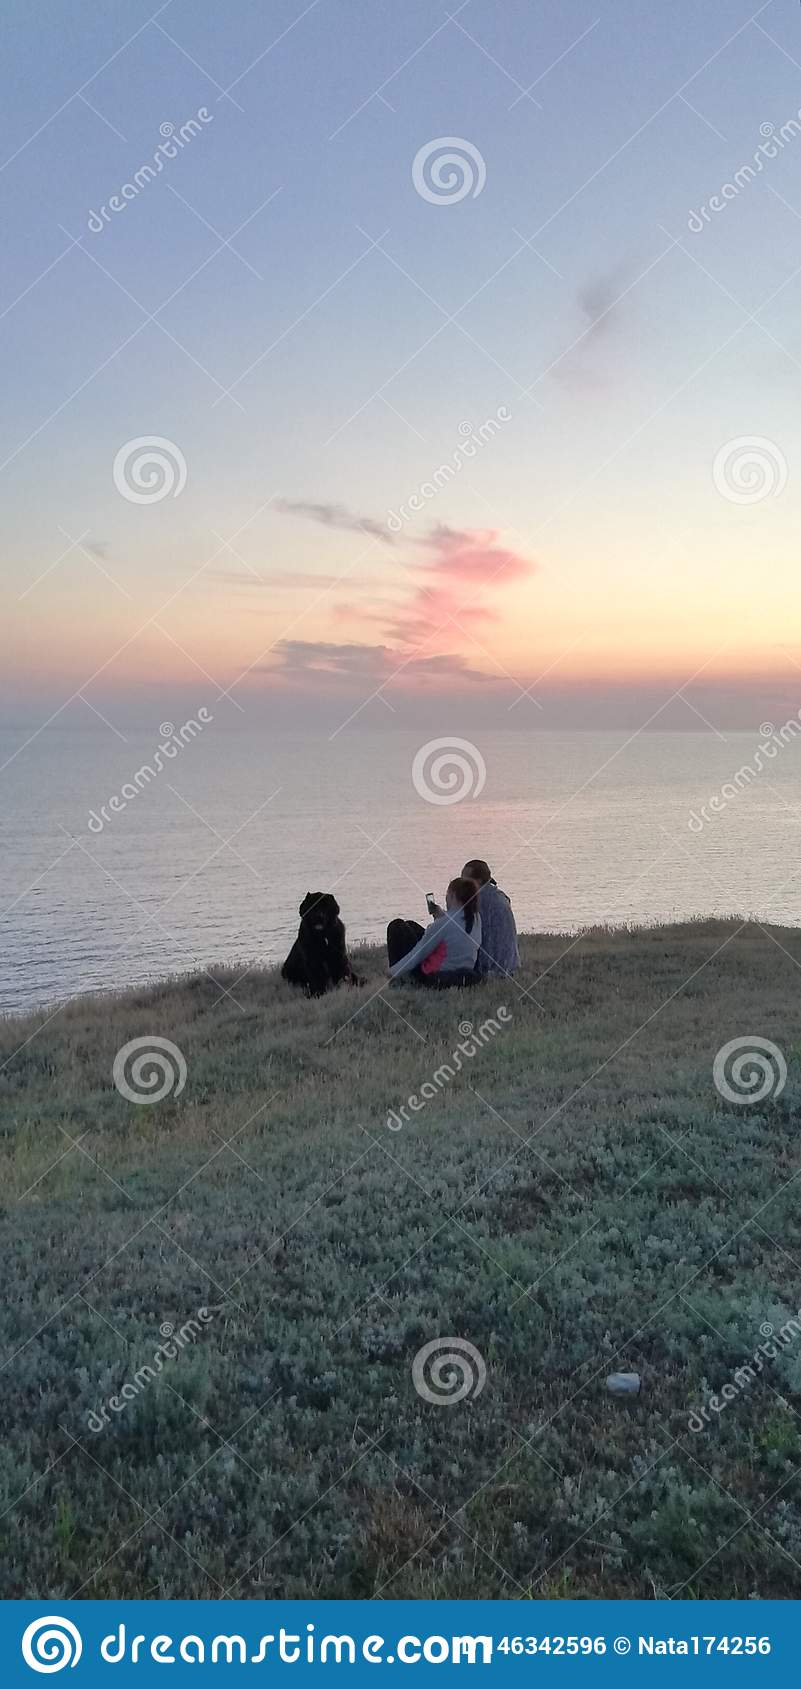 Summer evening. Family with a dog by the sea